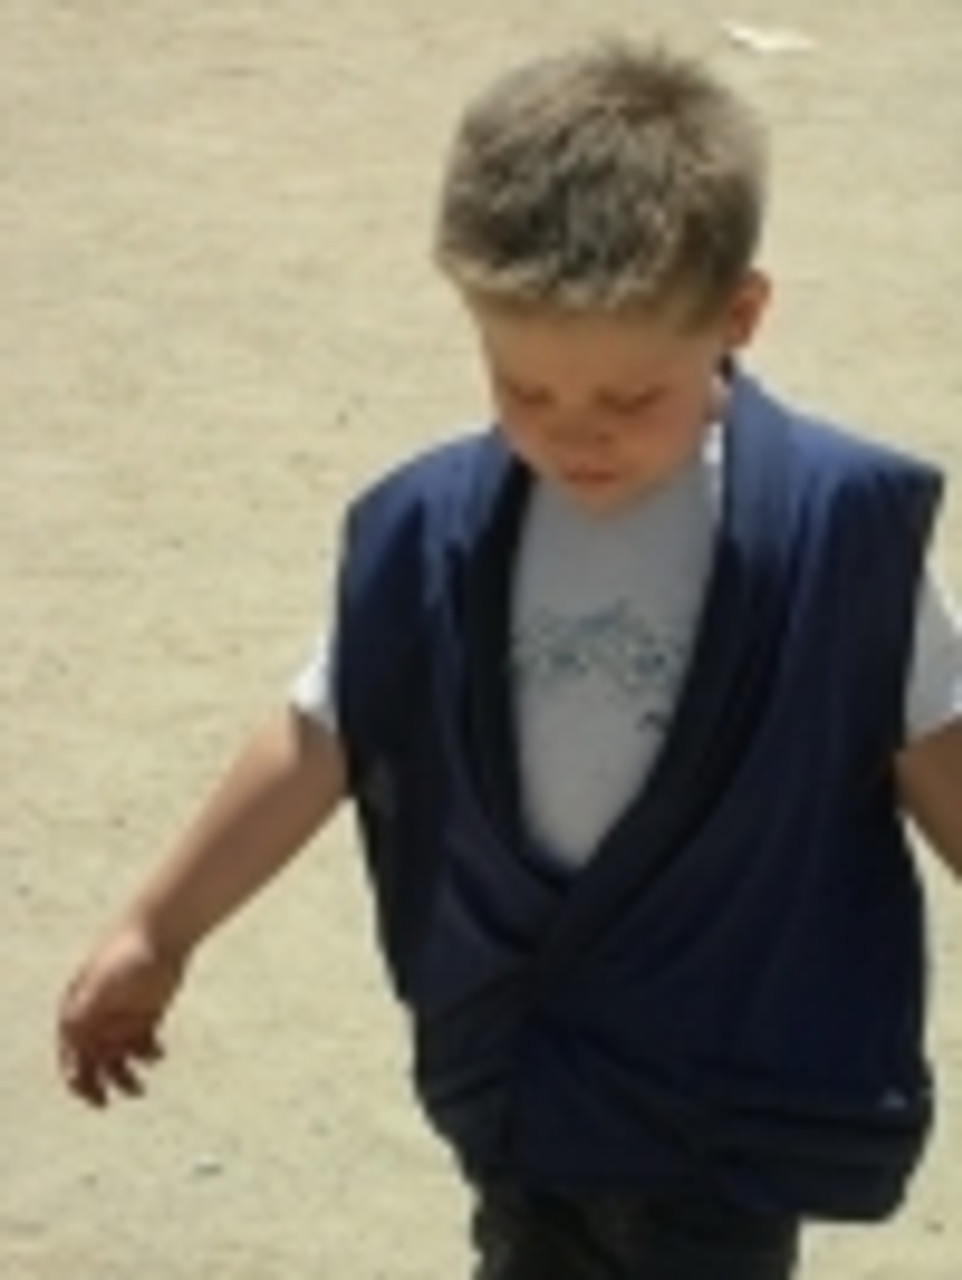 The small cool vest works well for children too!